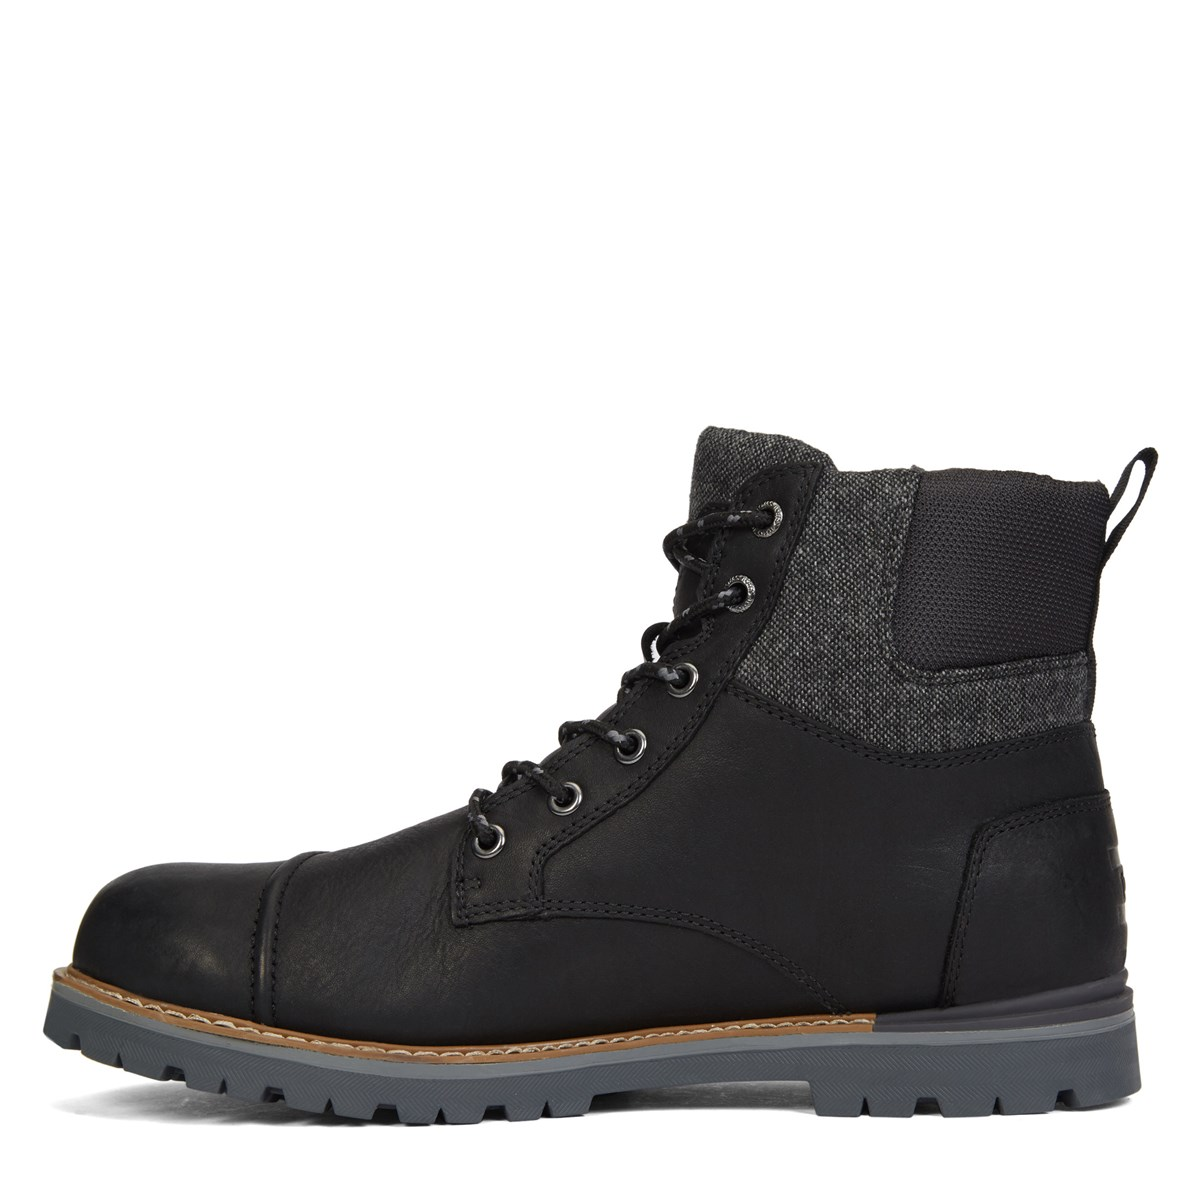 ashland black single men Free shipping both ways on clarks ashland scurry black leather, from our vast selection of styles fast delivery, and 24/7/365 real-person service with a smile click or call 800-927-7671.